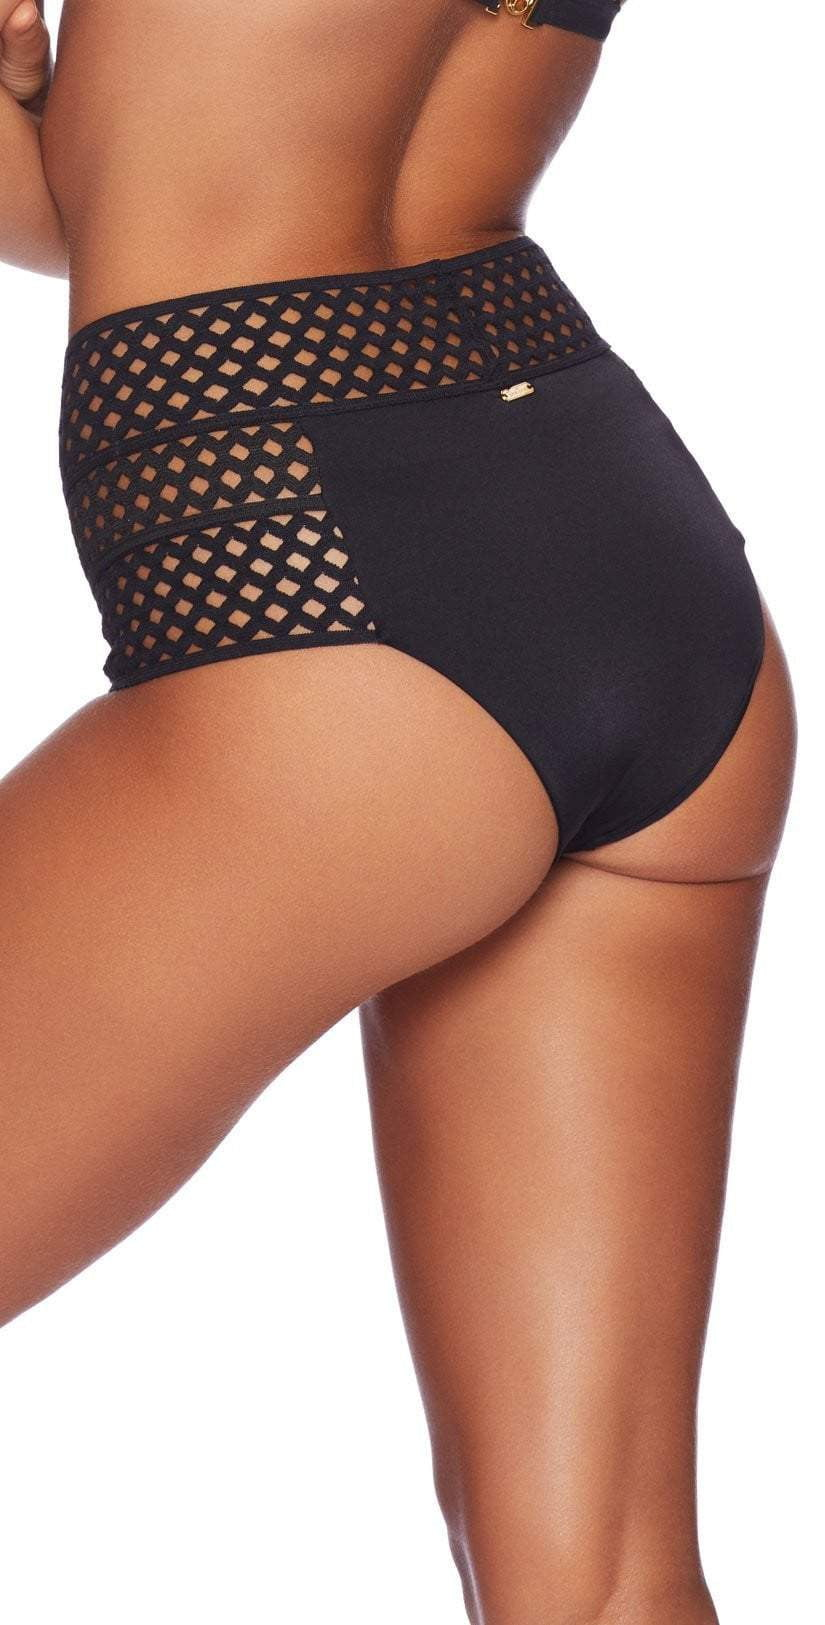 Beach Bunny Hayden High Waist Bottom In Black B18110B9-BLK: